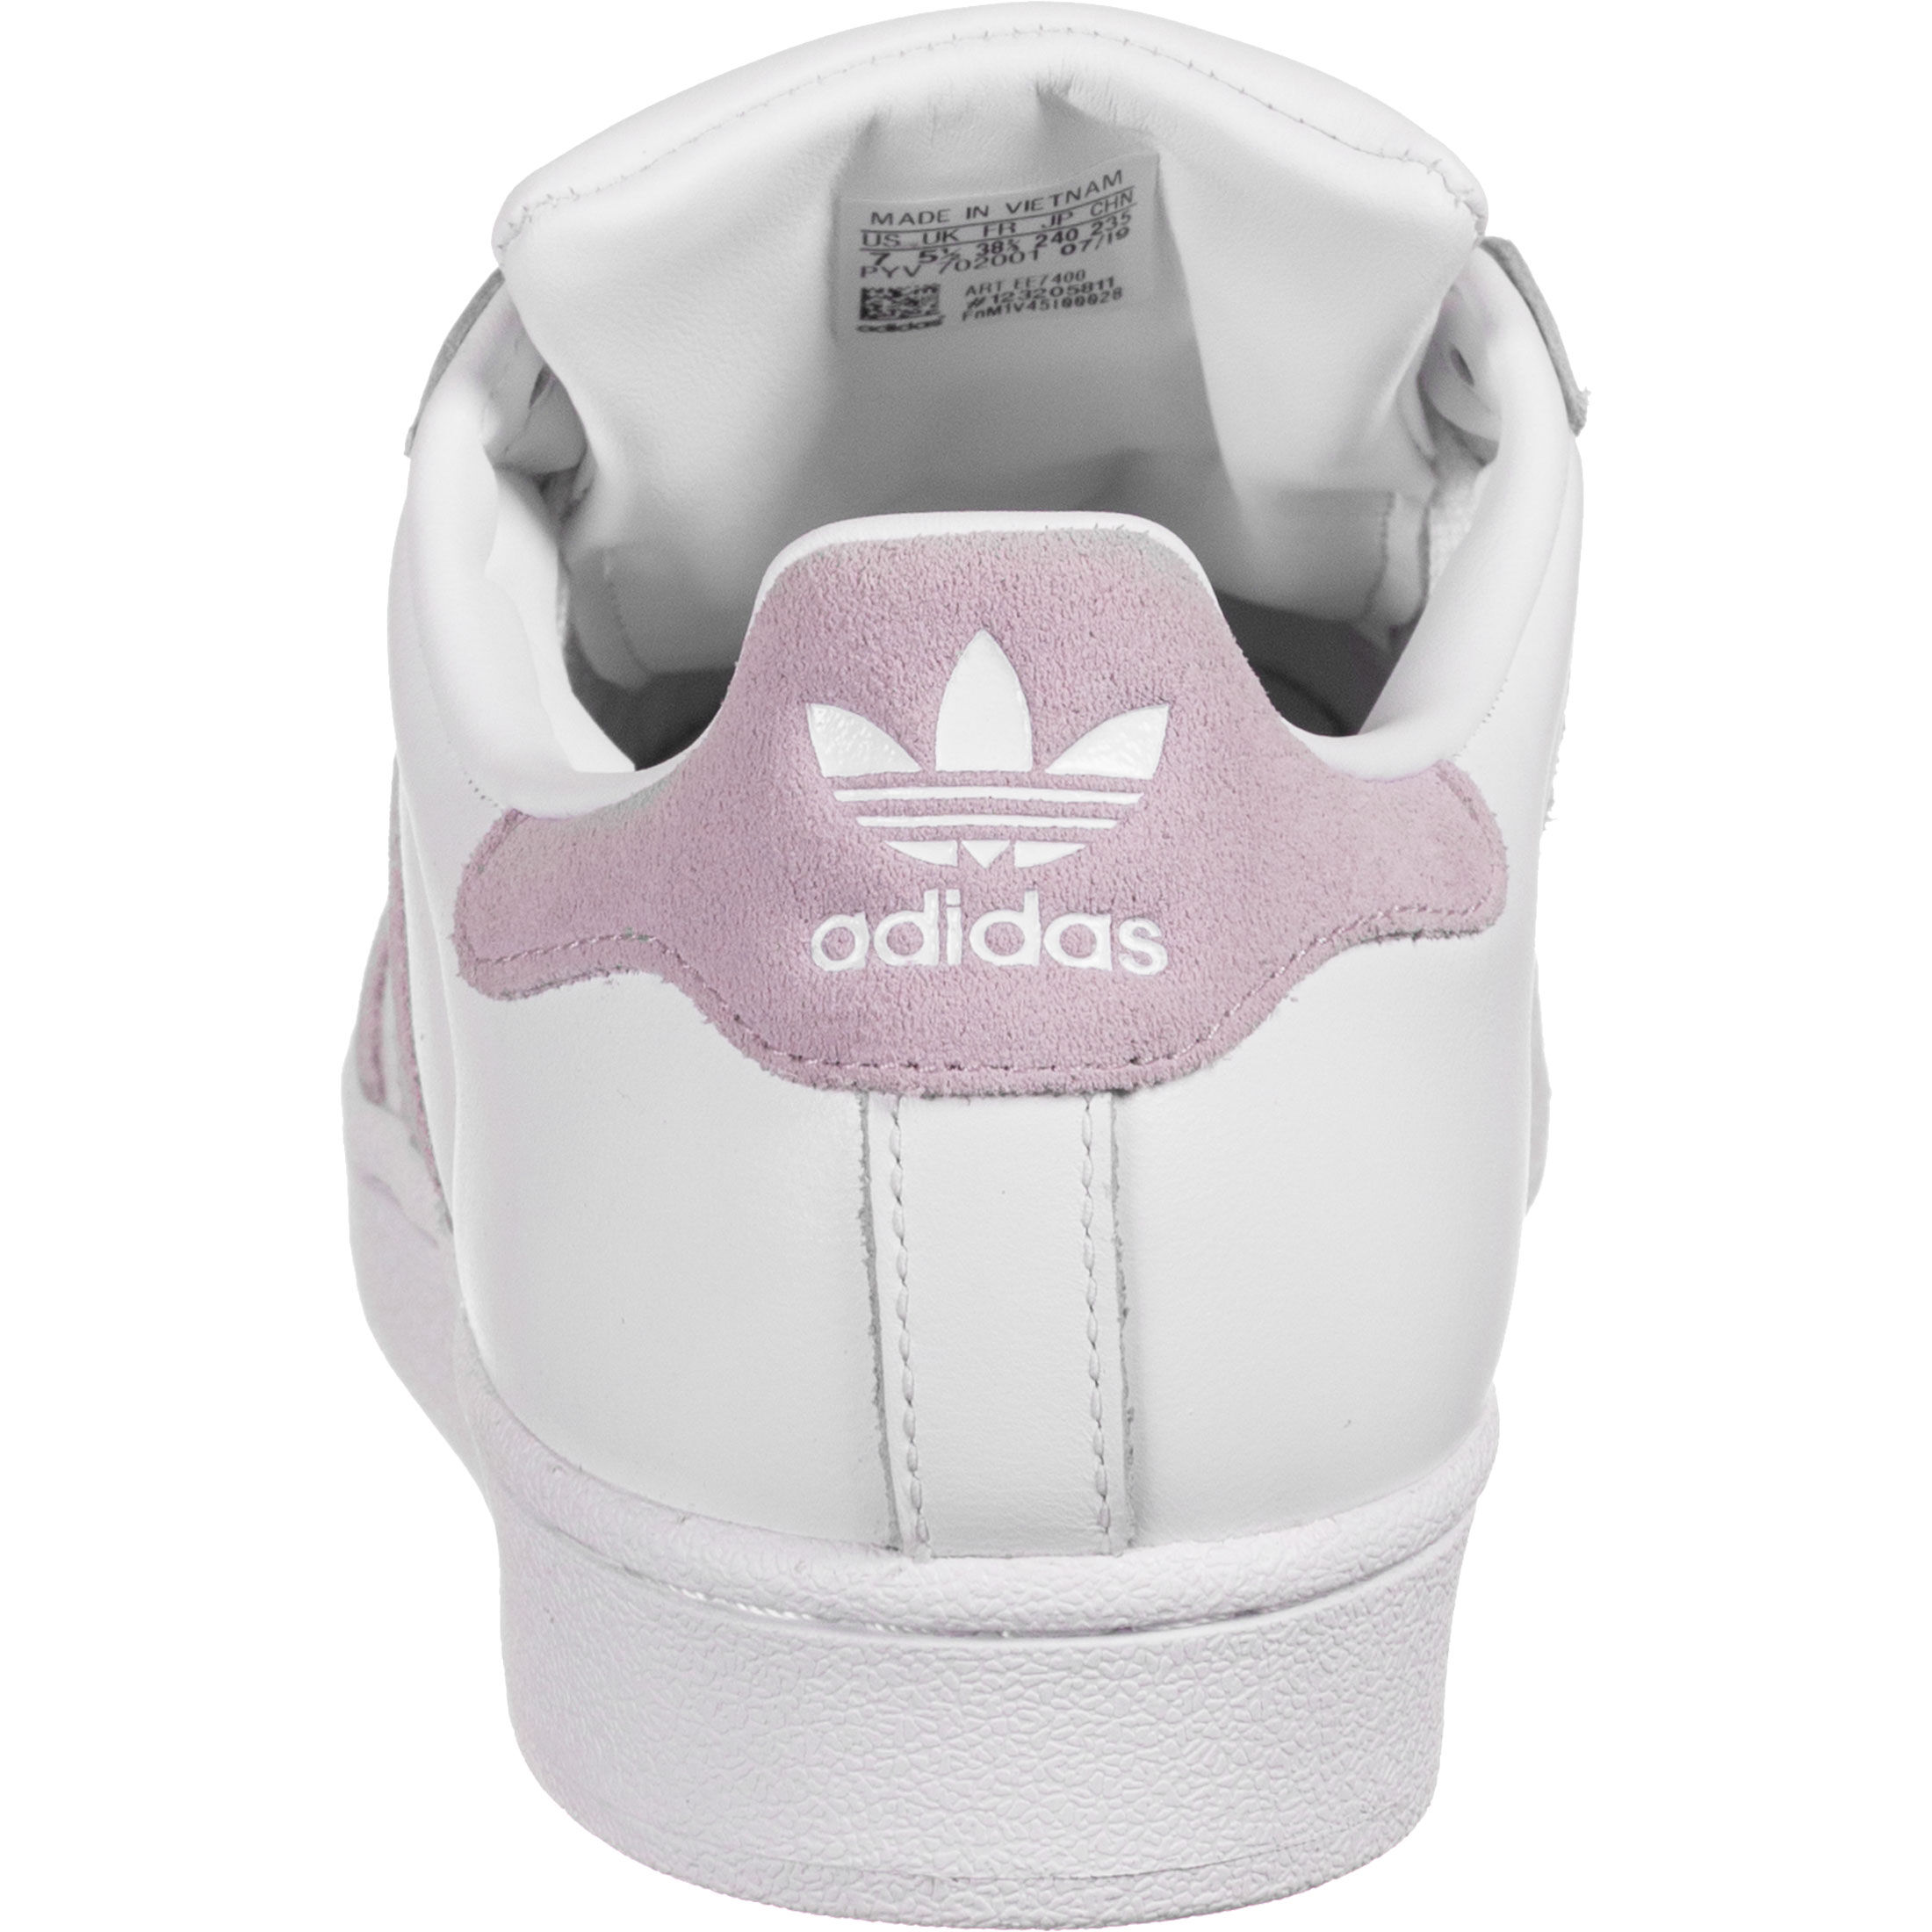 sitio perfil Aumentar  Limited Time Deals·New Deals Everyday adidas superstar lila, OFF 72%,Buy!